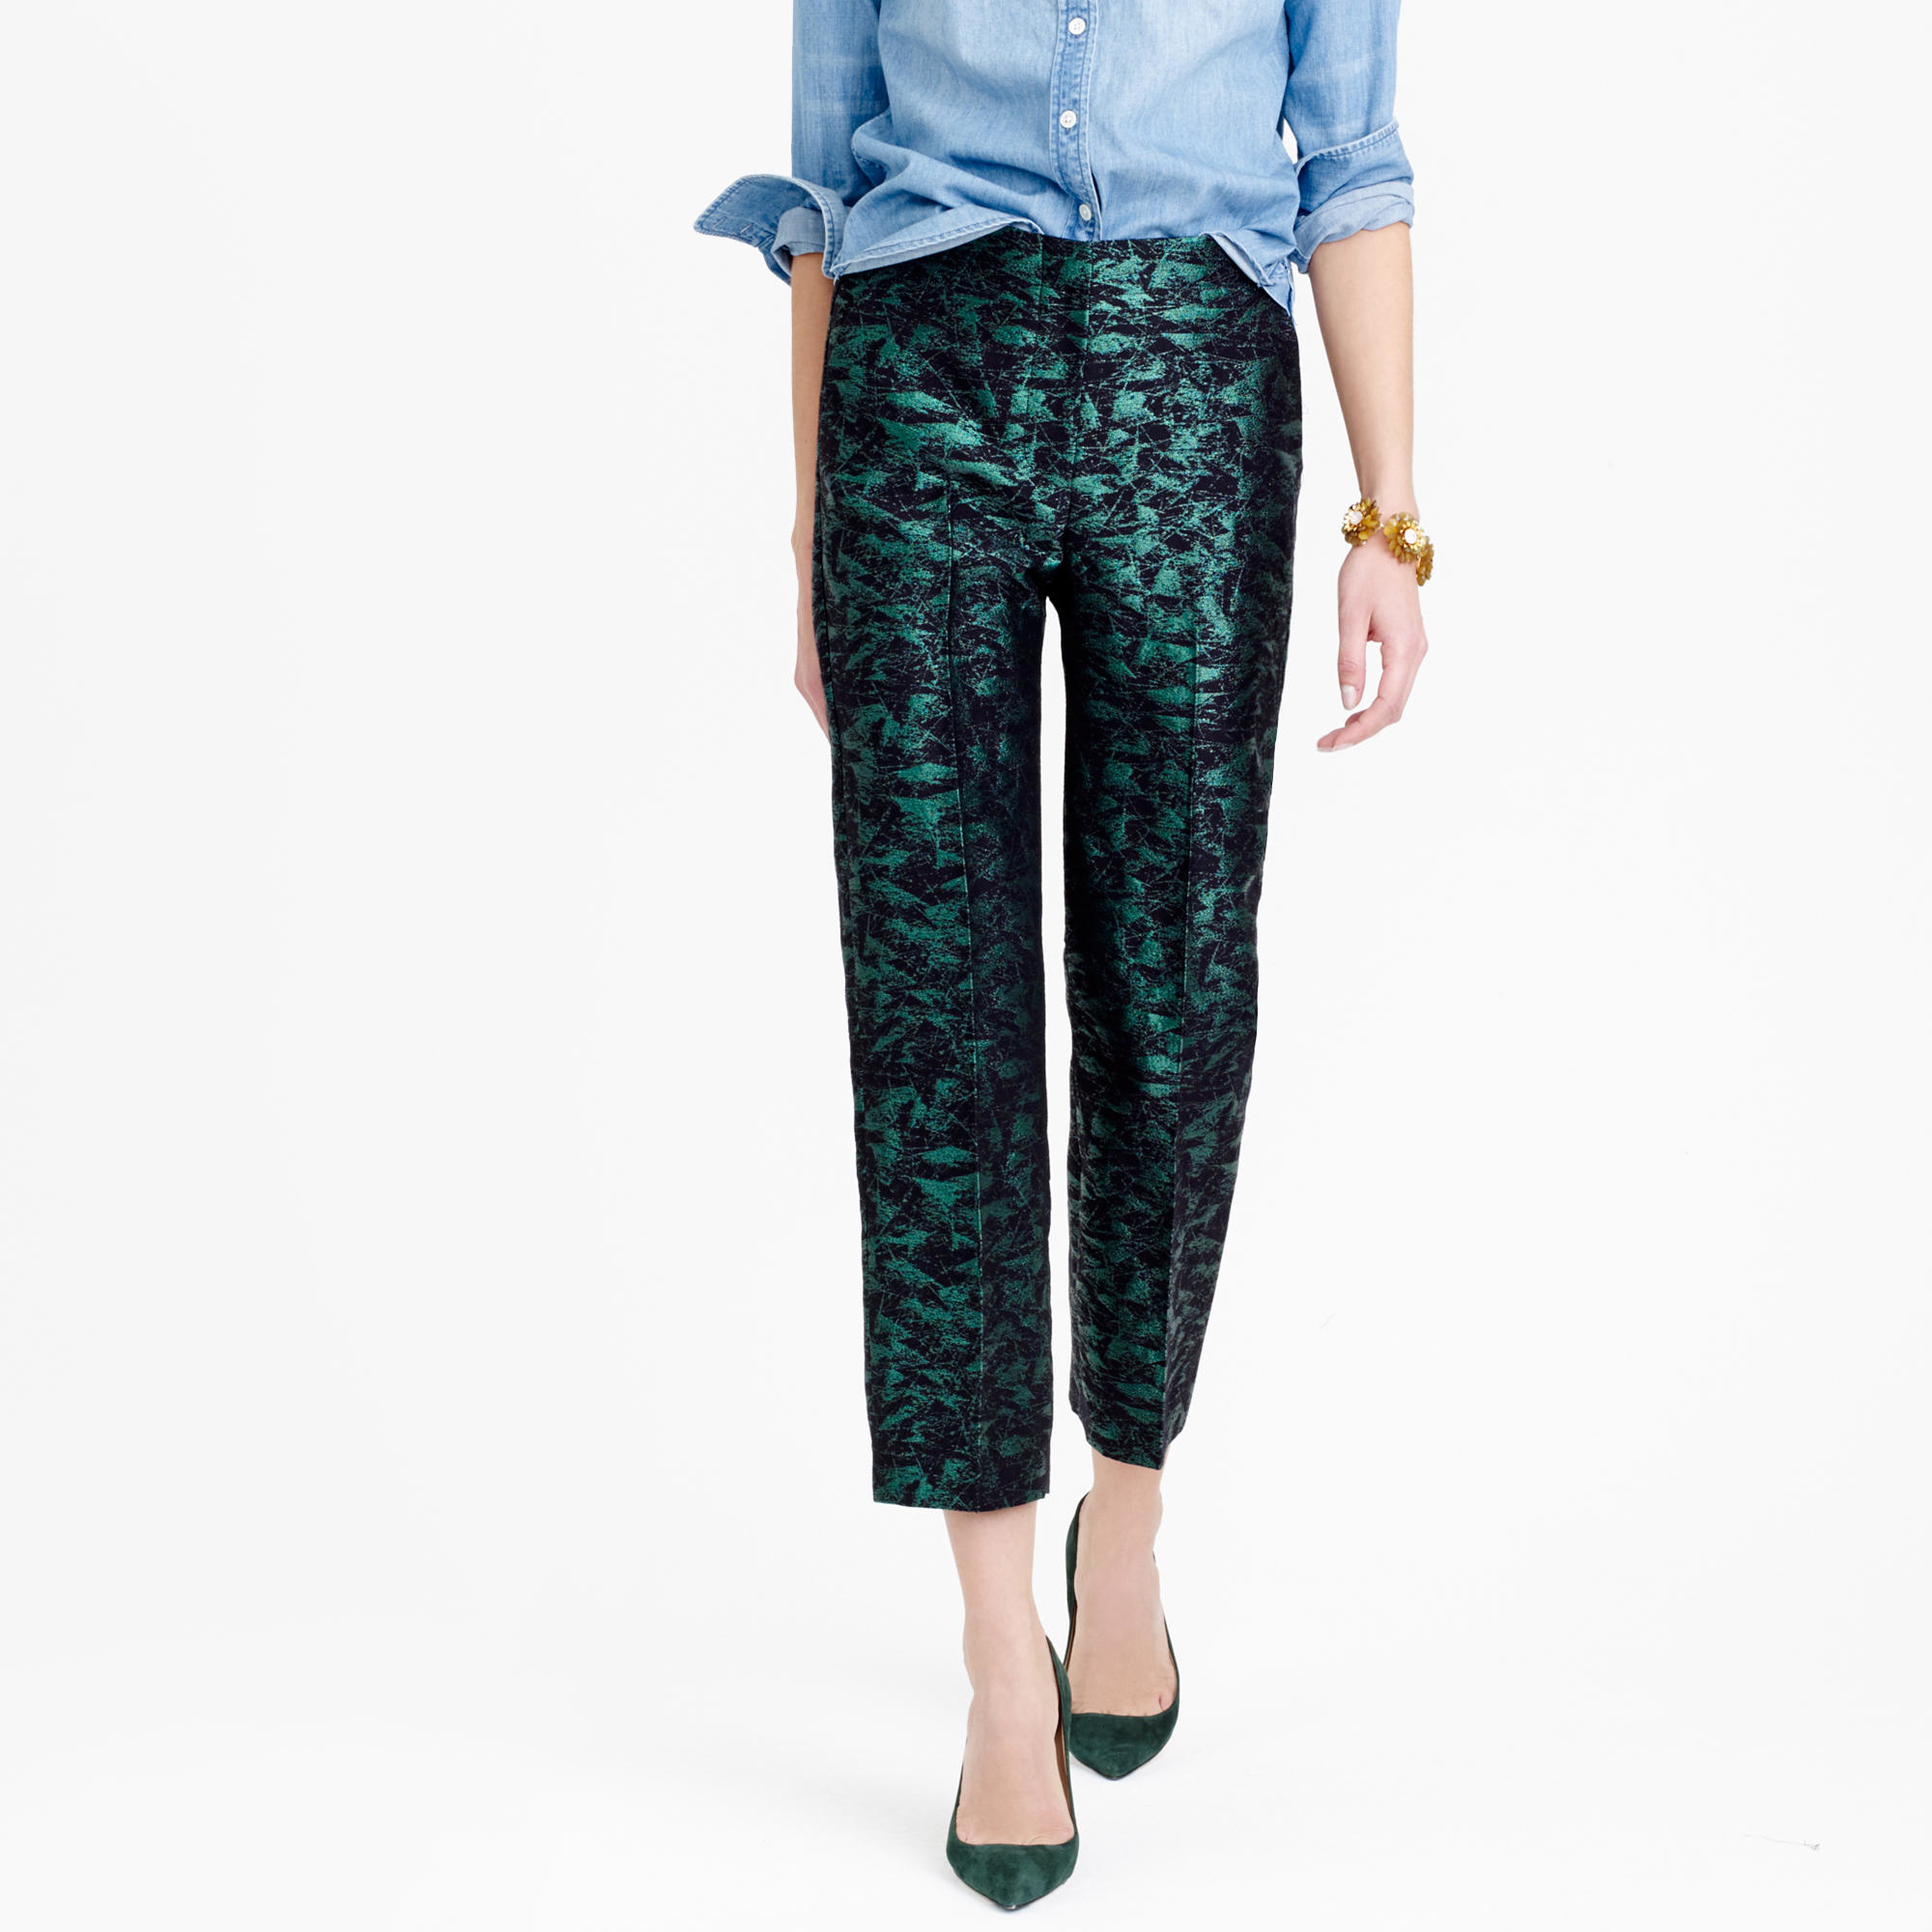 J Crew Patio Pant In Evergreen Jacquard In Black Lyst